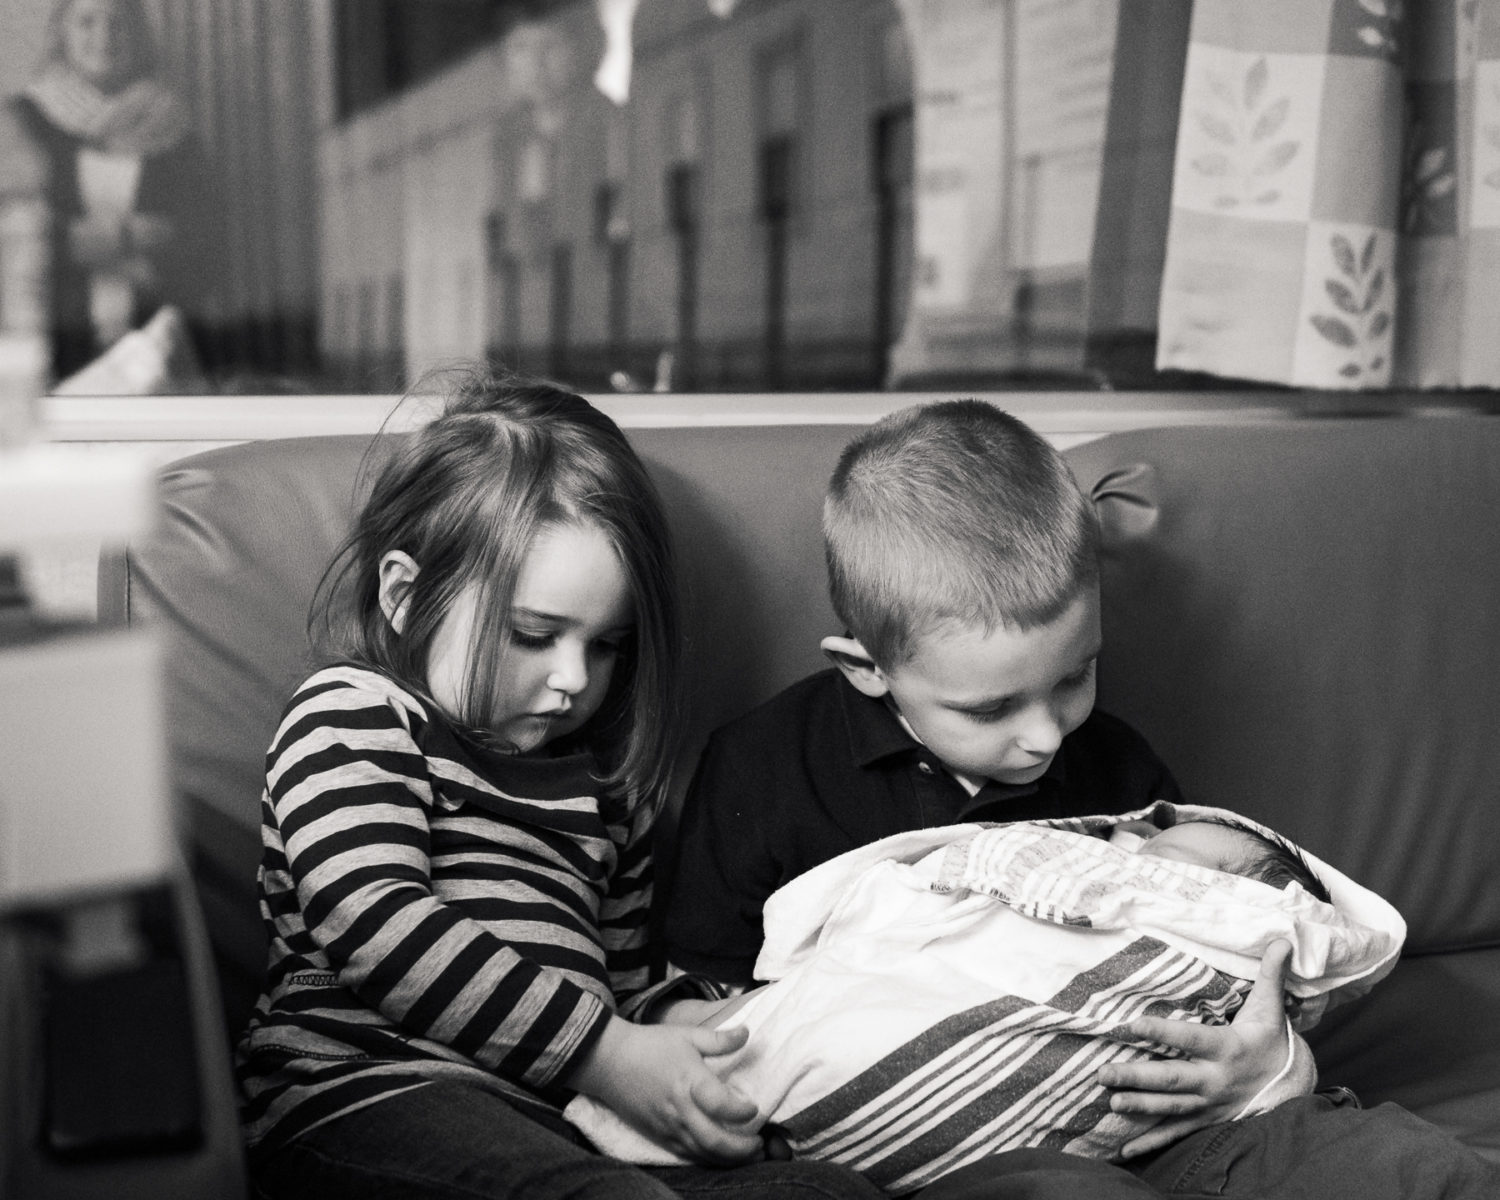 Big Brother and Big Sister holding newborn baby girl